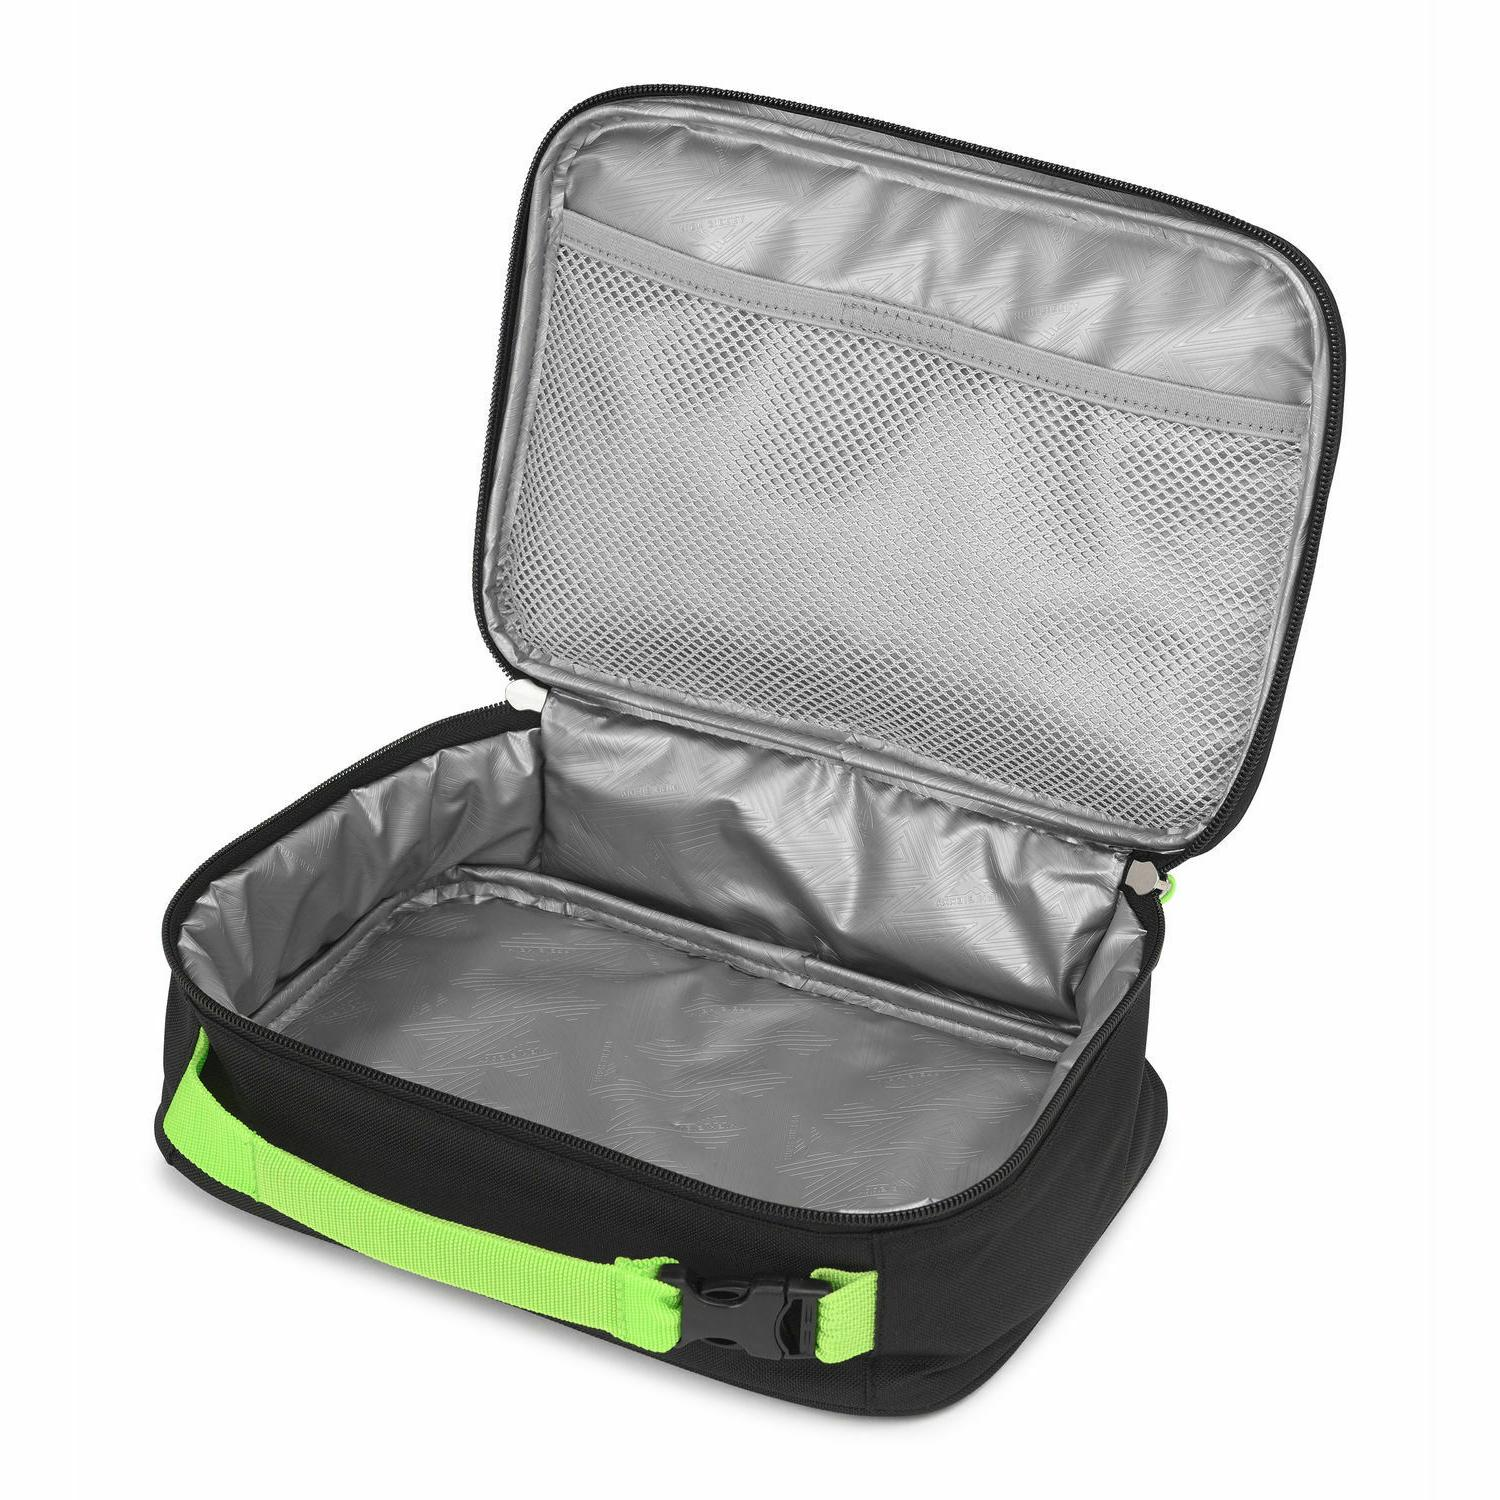 High Sierra Green Compartment Bag with